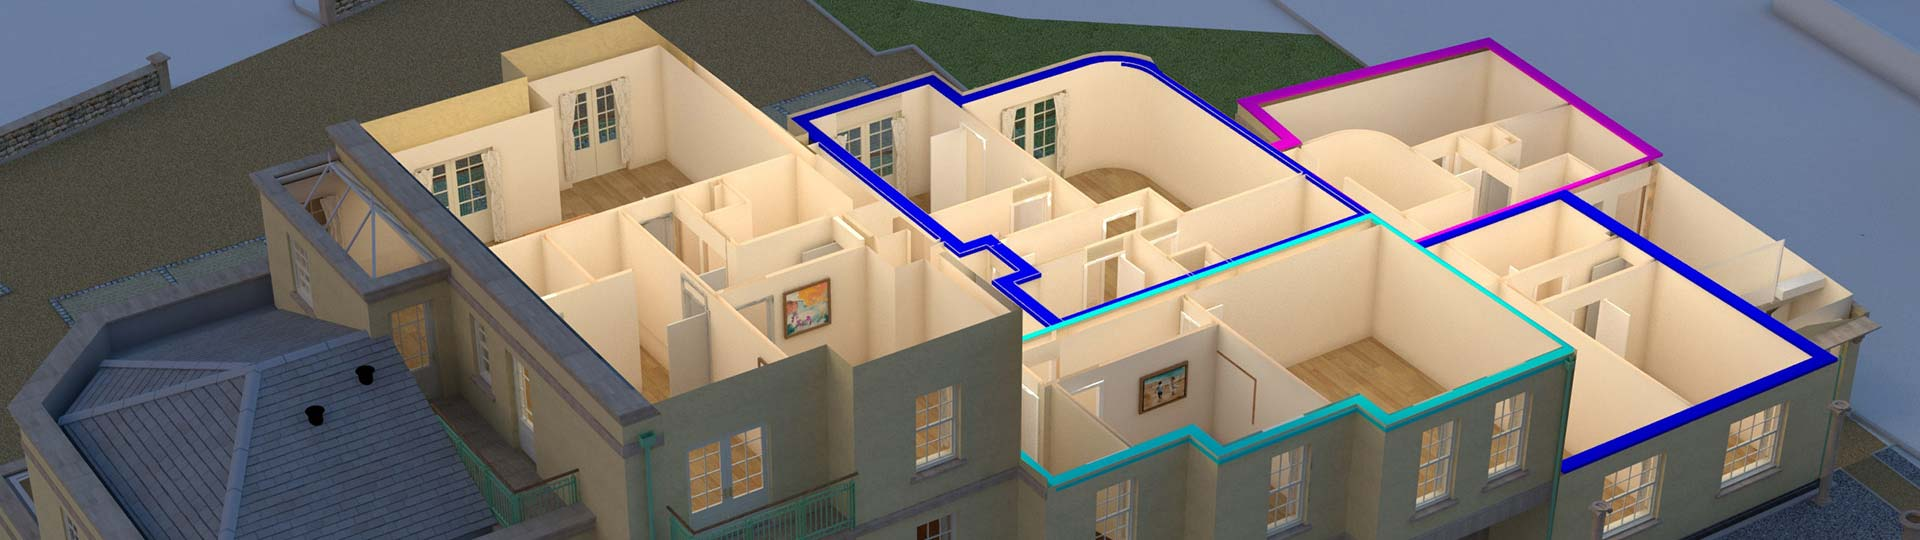 architectural visualisation plan view of apartment block